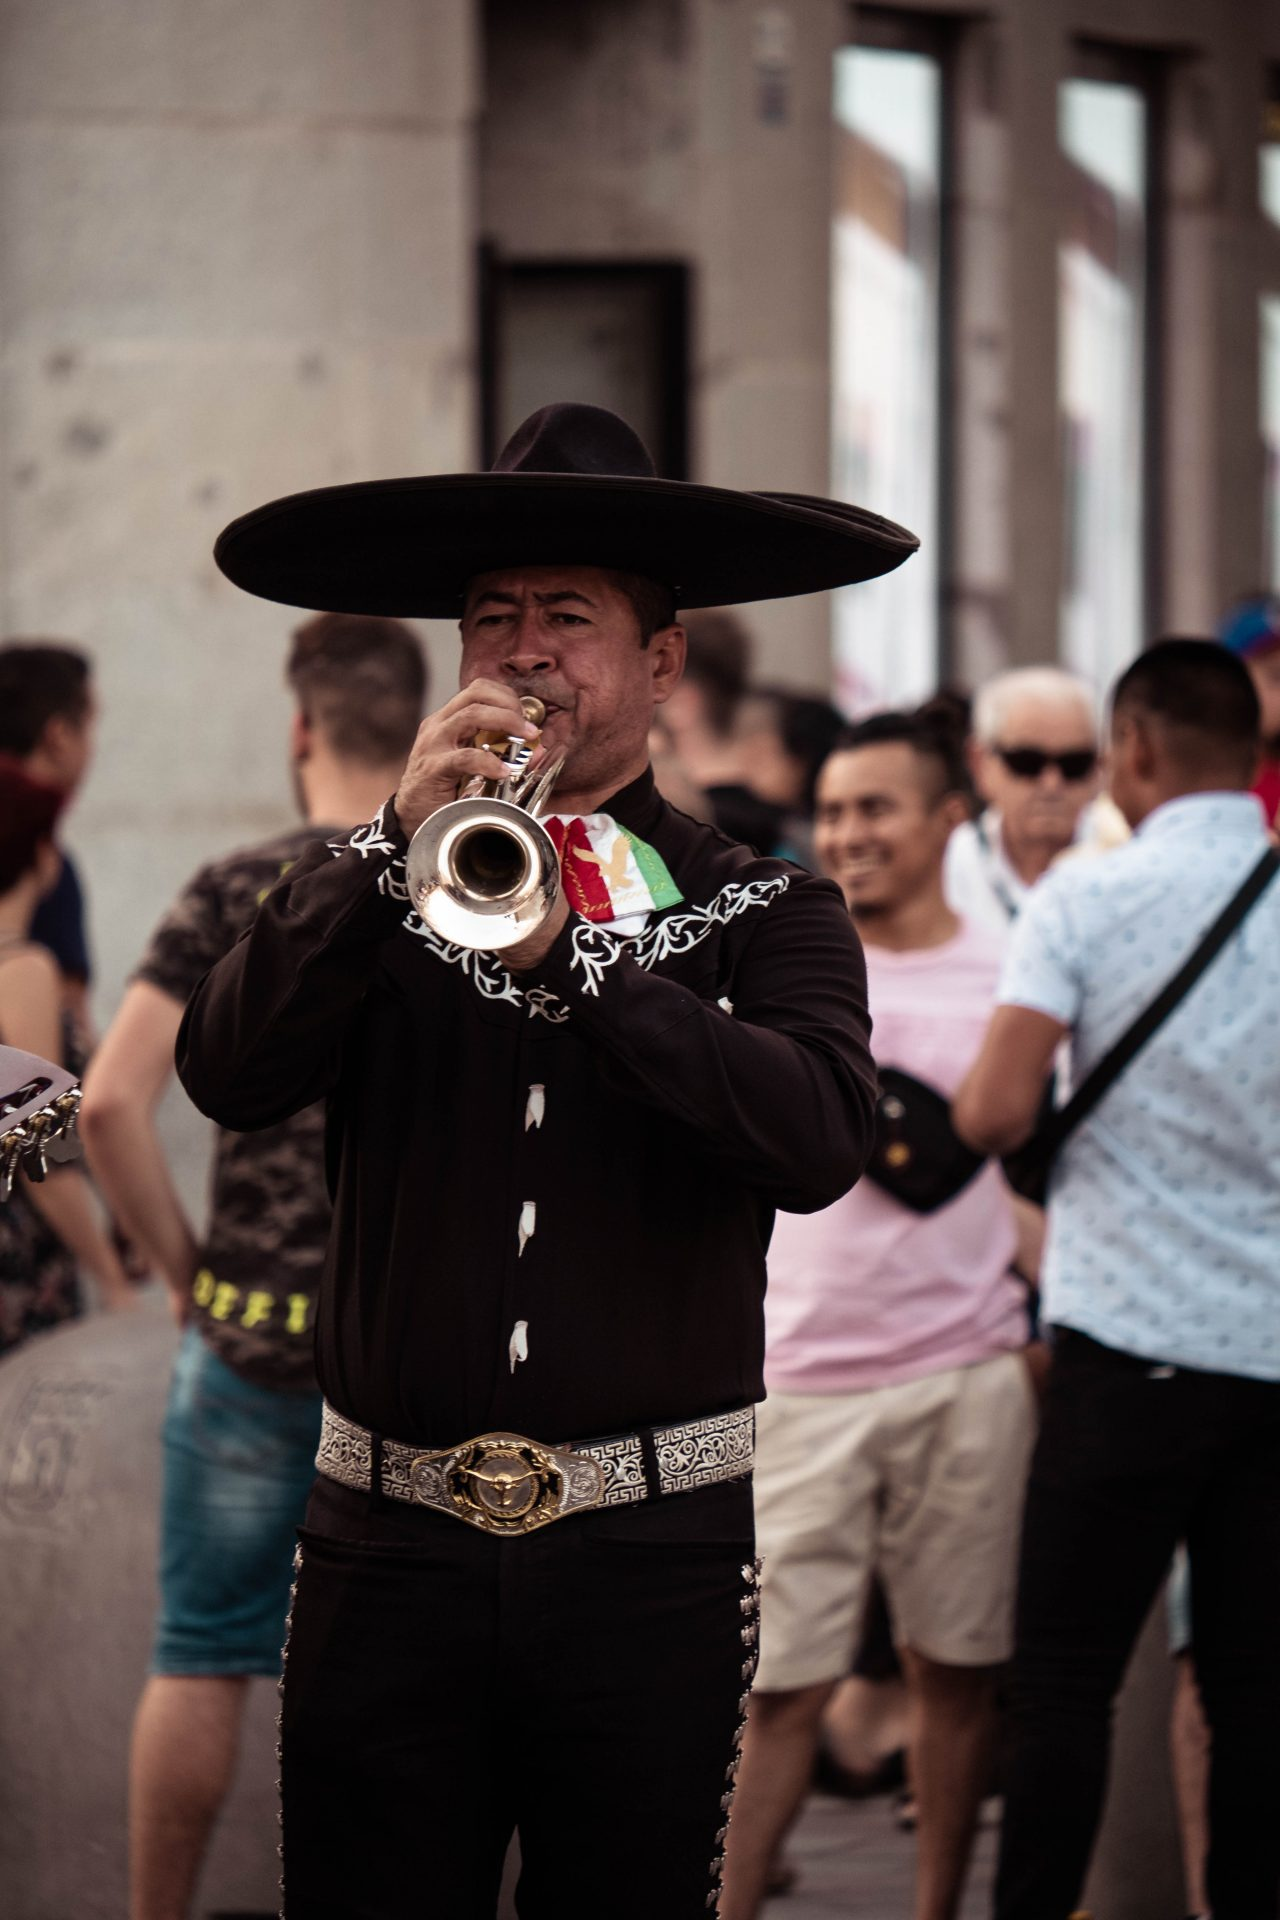 Men dressed in a mexican outfit playing trumpet in the streets of Madrid photo by Jo Kassis